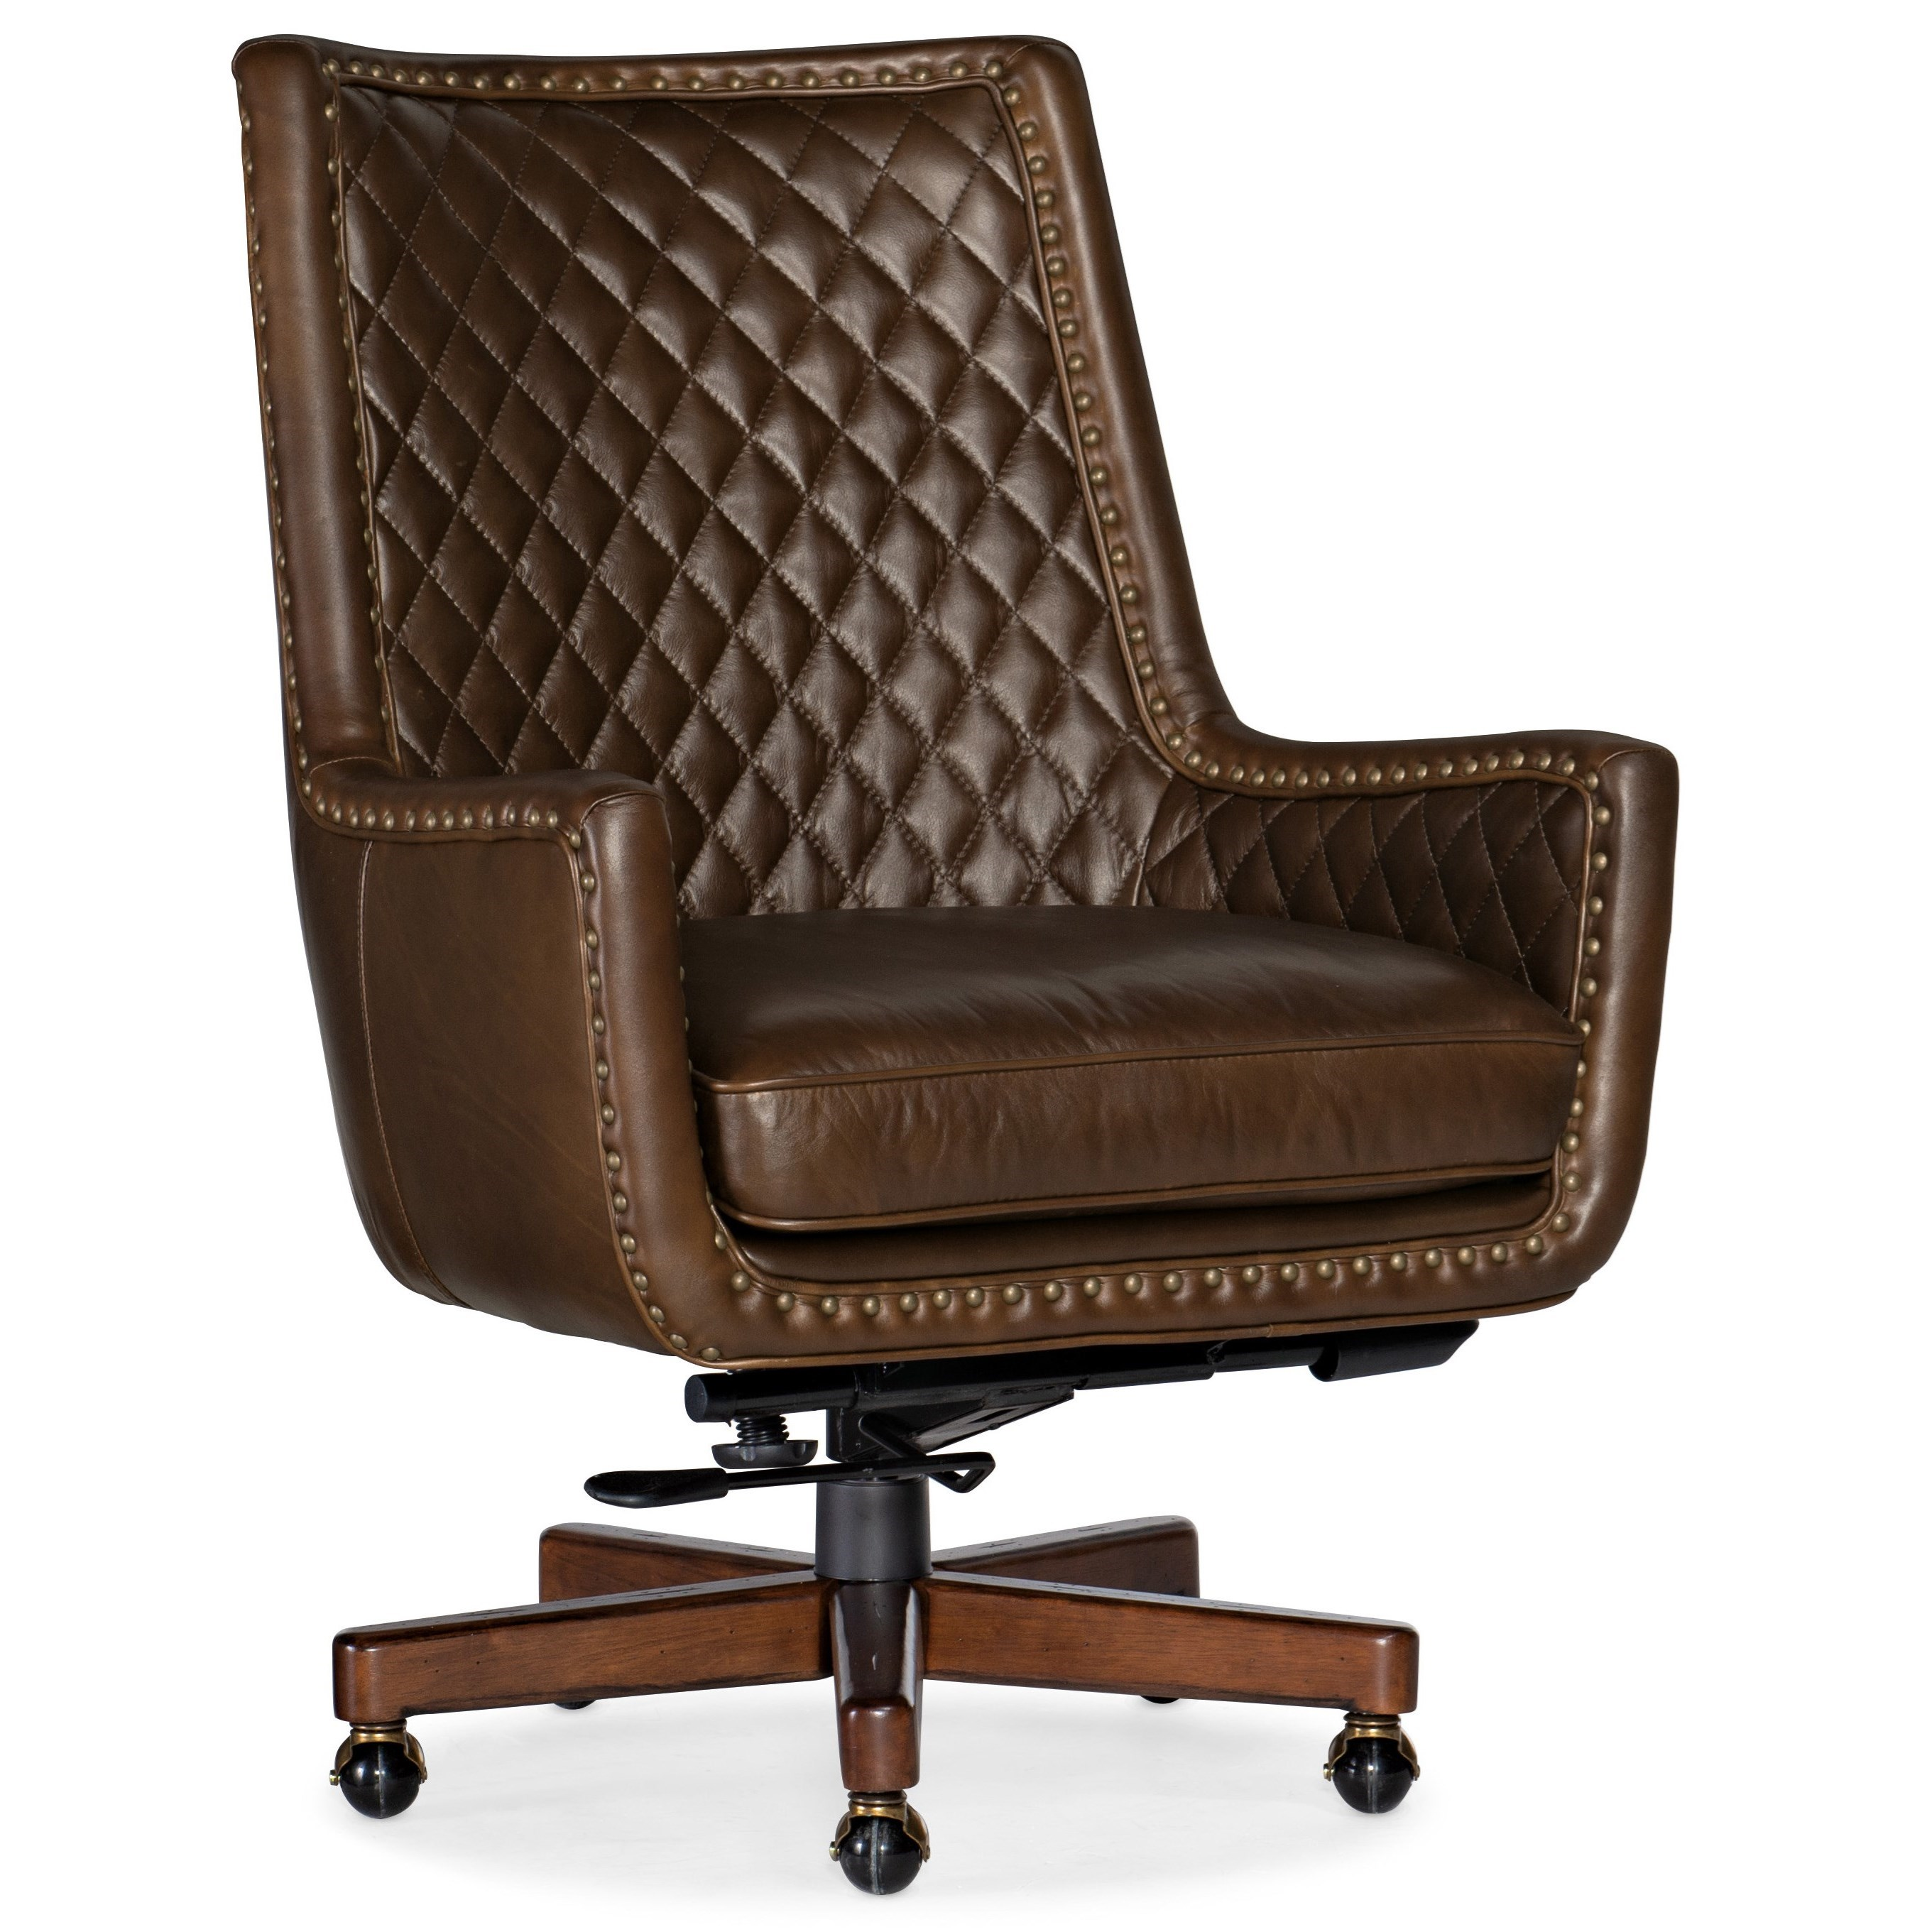 Executive Seating Kent Executive Swivel Tilt Chair by Hooker Furniture at Miller Waldrop Furniture and Decor